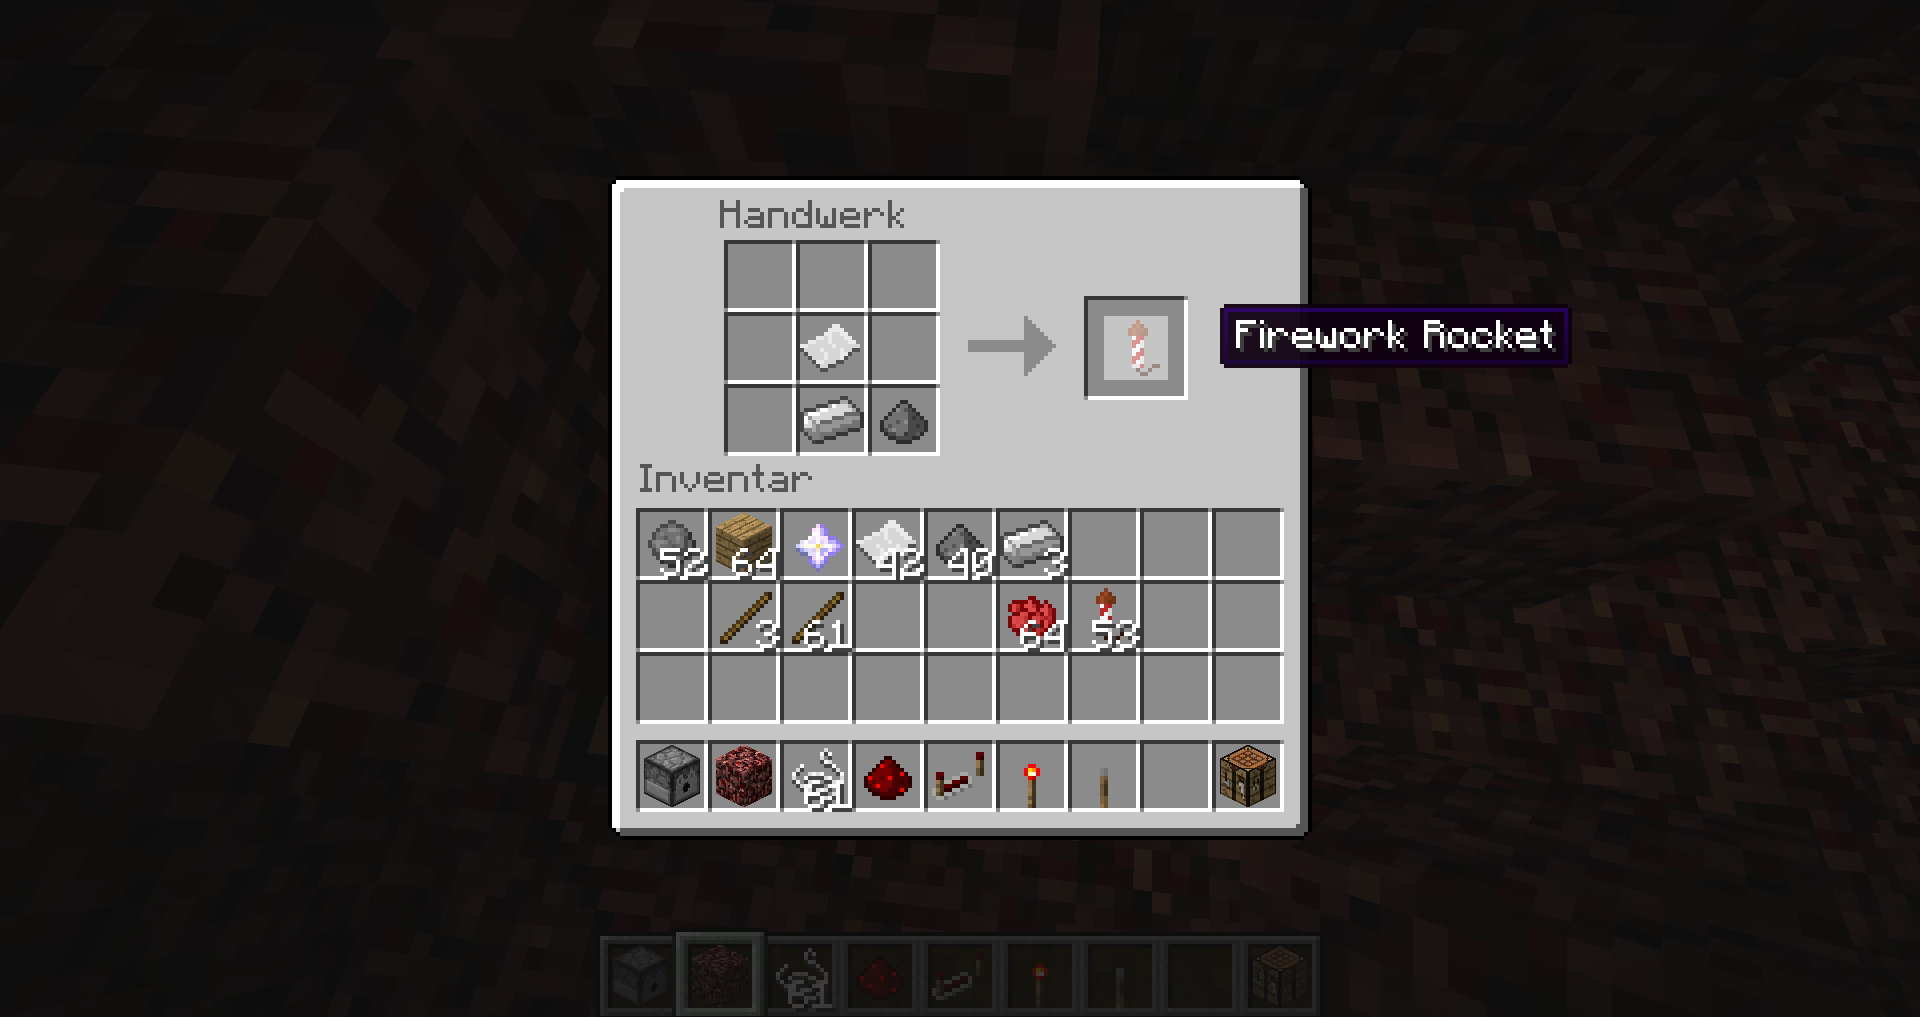 How To Craft A Firework Star In Minecraft